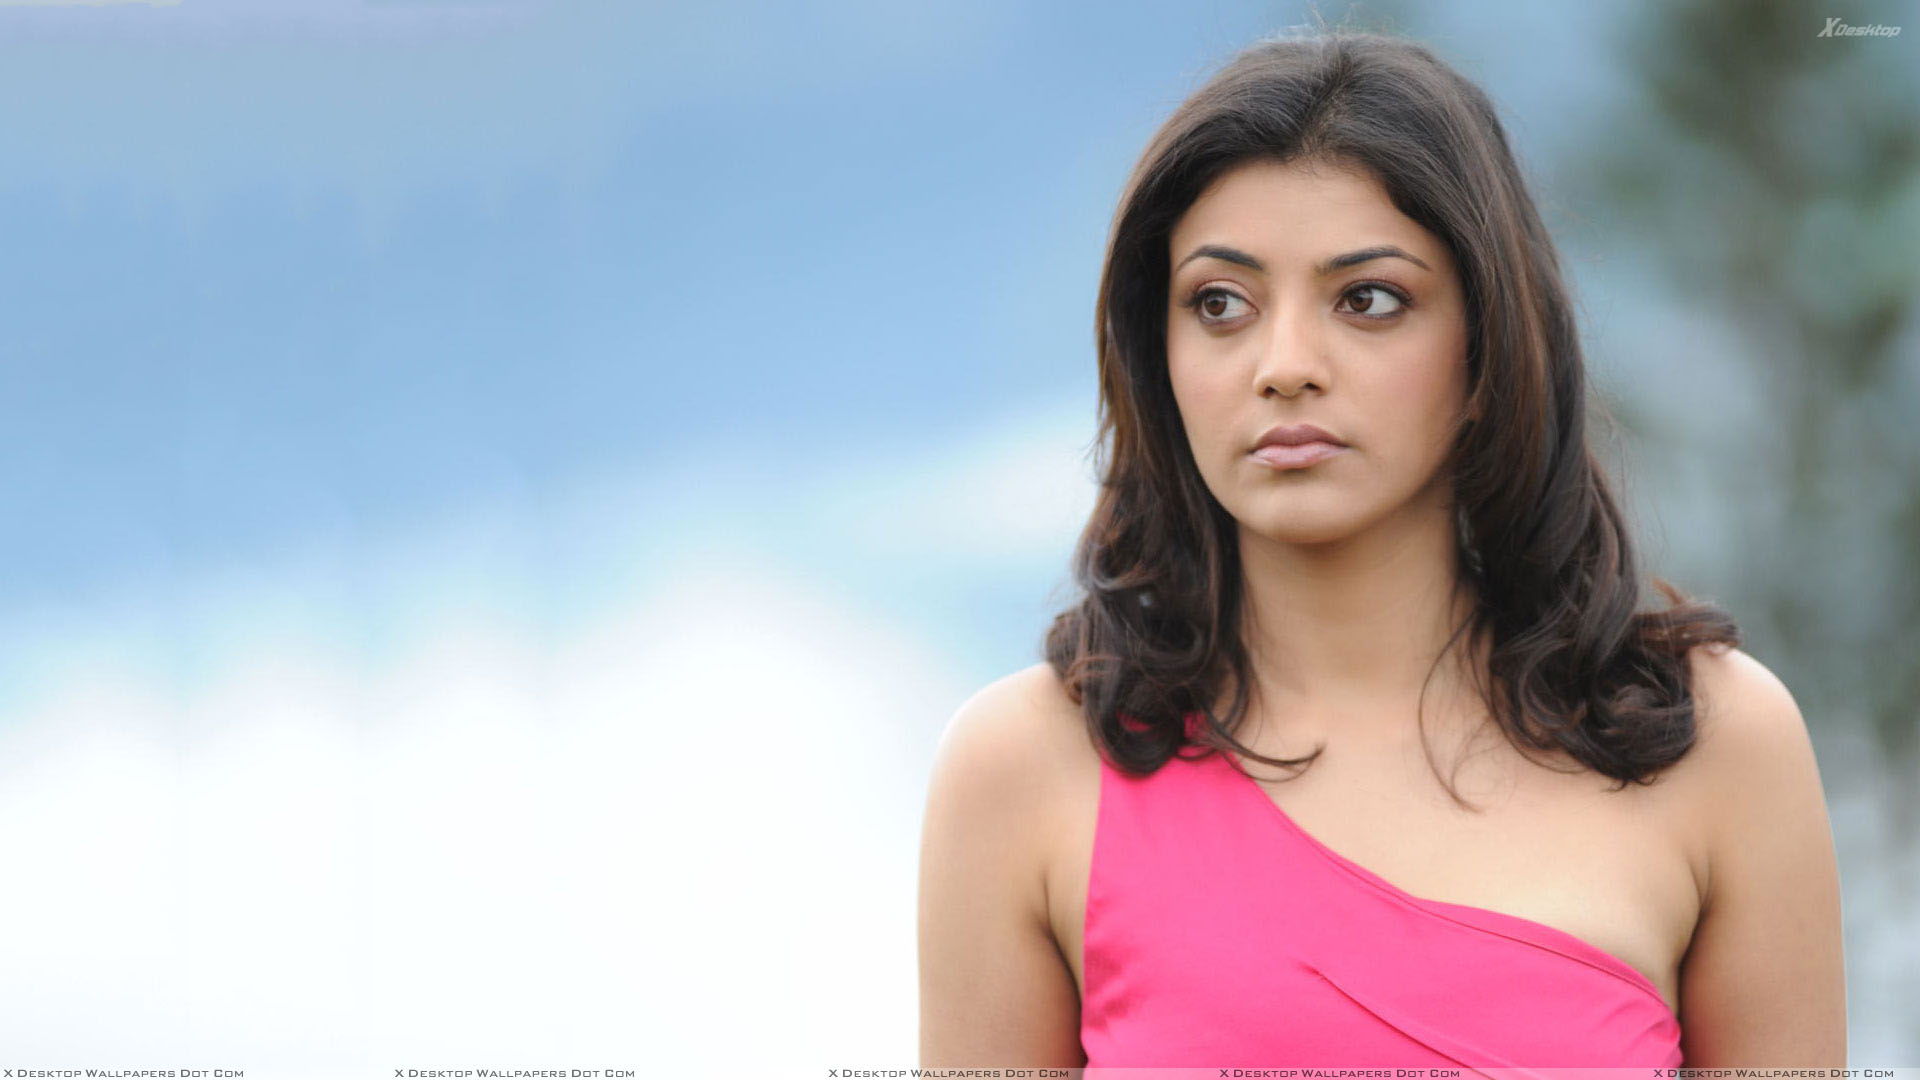 kajal aggarwal sad face in pink dress wallpaper